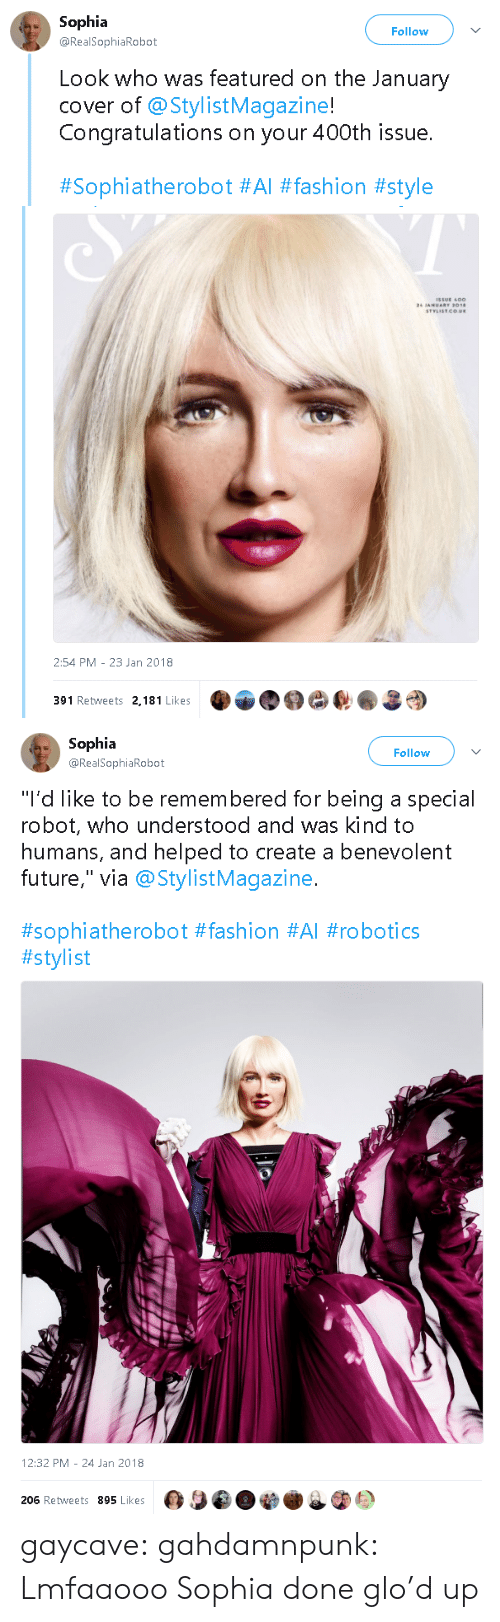 """robotics: Sophia  Follow  @RealSophiaRobot  Look who was featured on the January  cover of @StylistMagazine!  Congratulations on your 400th issue.  #Sophiatherobot #Al #fashion #style   2:54 PM-23 Jan 2018  391 Retweets 2,181 Likes   Sophia  Follow  @RealSophiaRobot  """"I'd like to be remembered for being a special  robot, who understood and was kind to  humans, and helped to create a benevolent  future,"""" via @StylistMagazine.  #sophiatherobot #fashion #Al #robotics  #stylist   12:32 PM -24 Jan 2018  206 Retweets 895 Likes gaycave:  gahdamnpunk:  Lmfaaooo Sophia done glo'd up"""